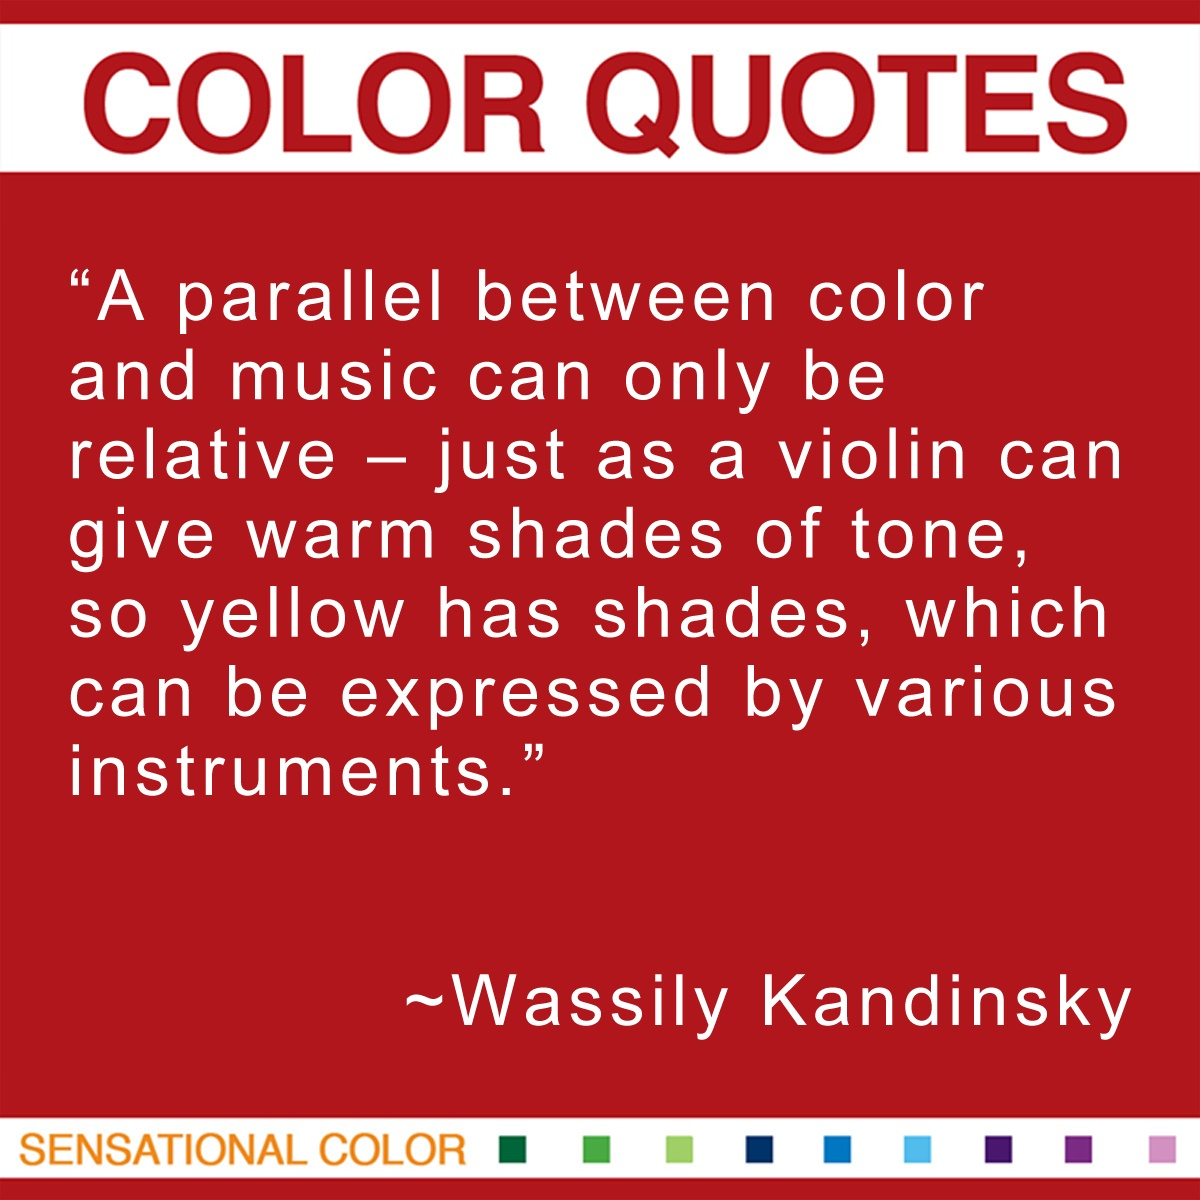 """A parallel between color and music can only be relative – just as a violin can give warm shades of tone, so yellow has shades, which can be expressed by various instruments."" - Wassily Kandinsky"